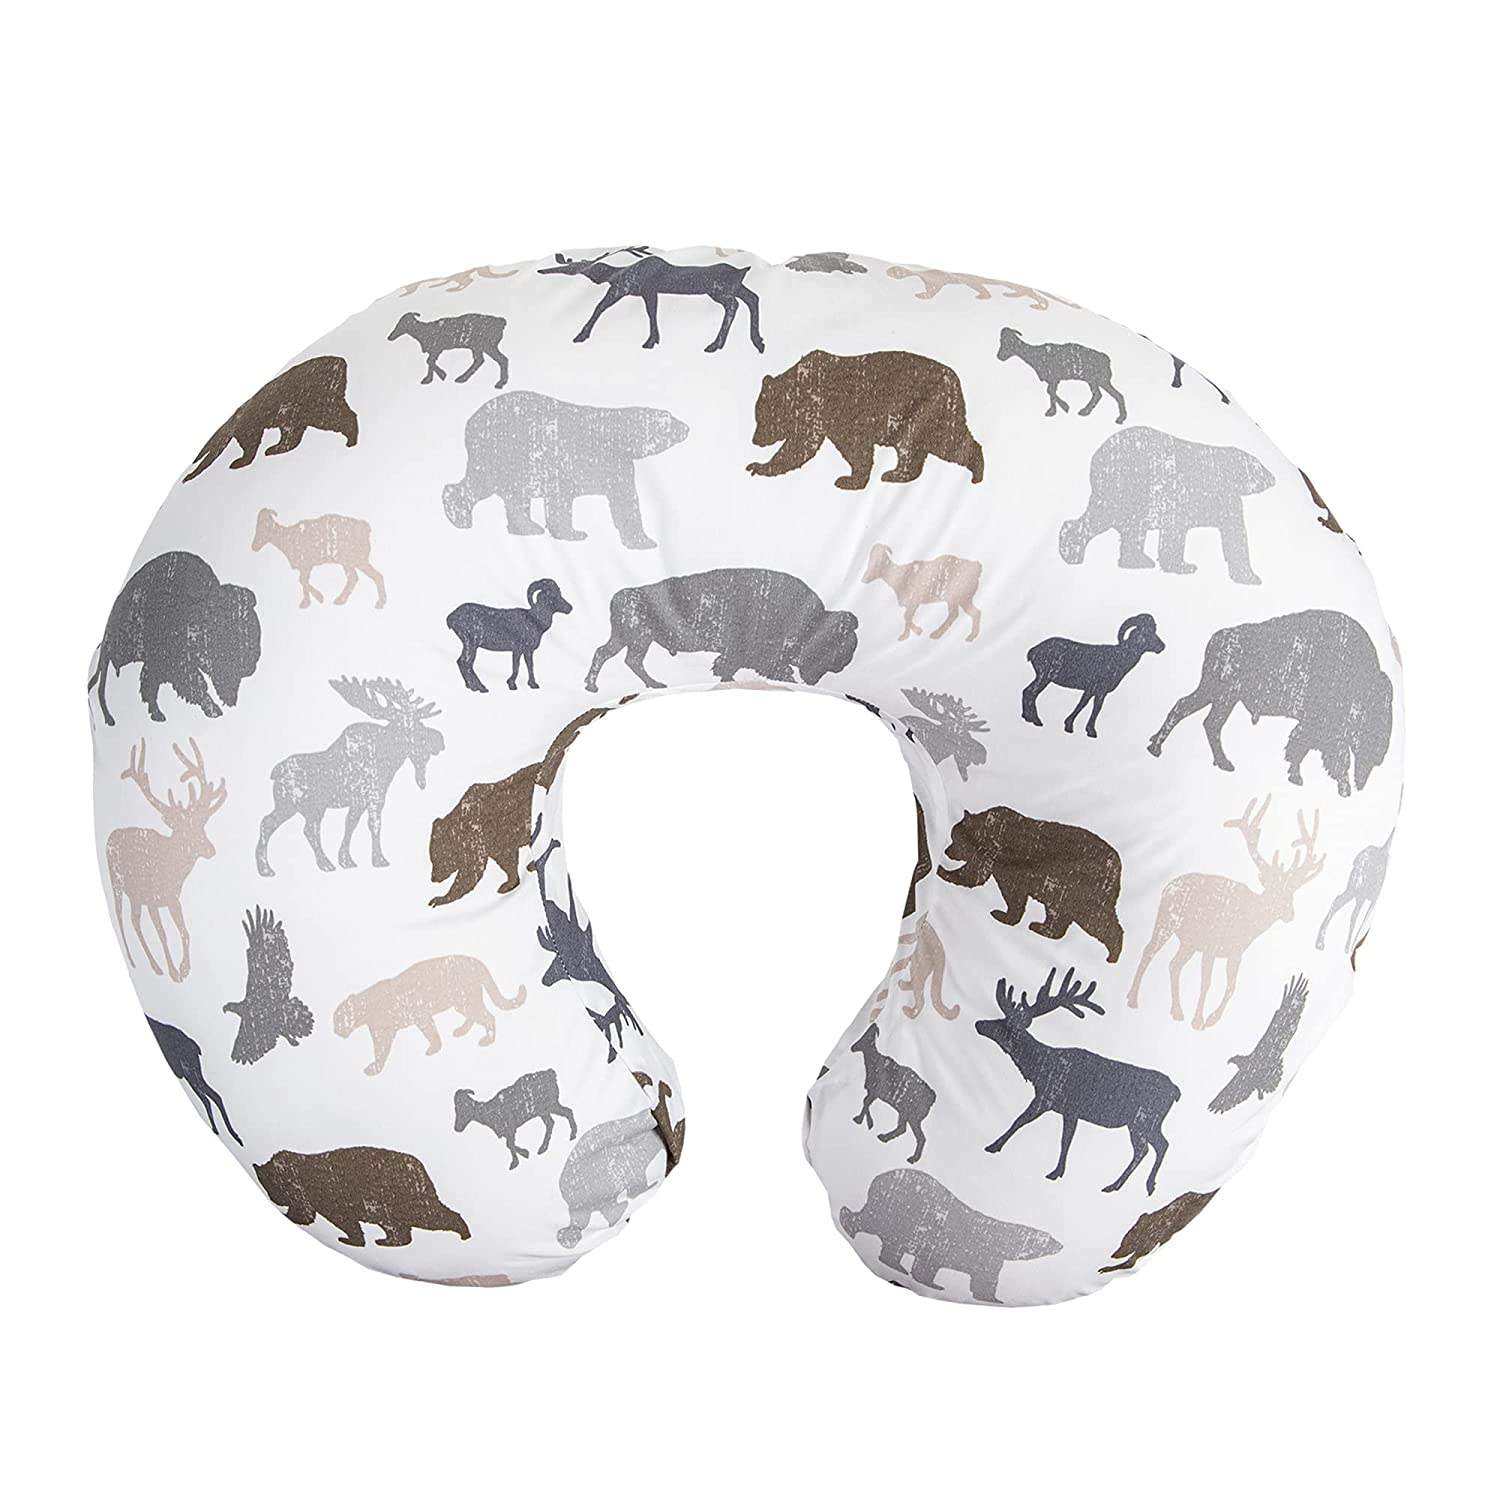 Boppy Nursing Pillow and Positioner—Original | Neutral Wildlife, Forest Animals on White | Breastfeeding, Bottle Feeding, Baby Support | With Removable Cotton Blend Cover | Awake-Time Support